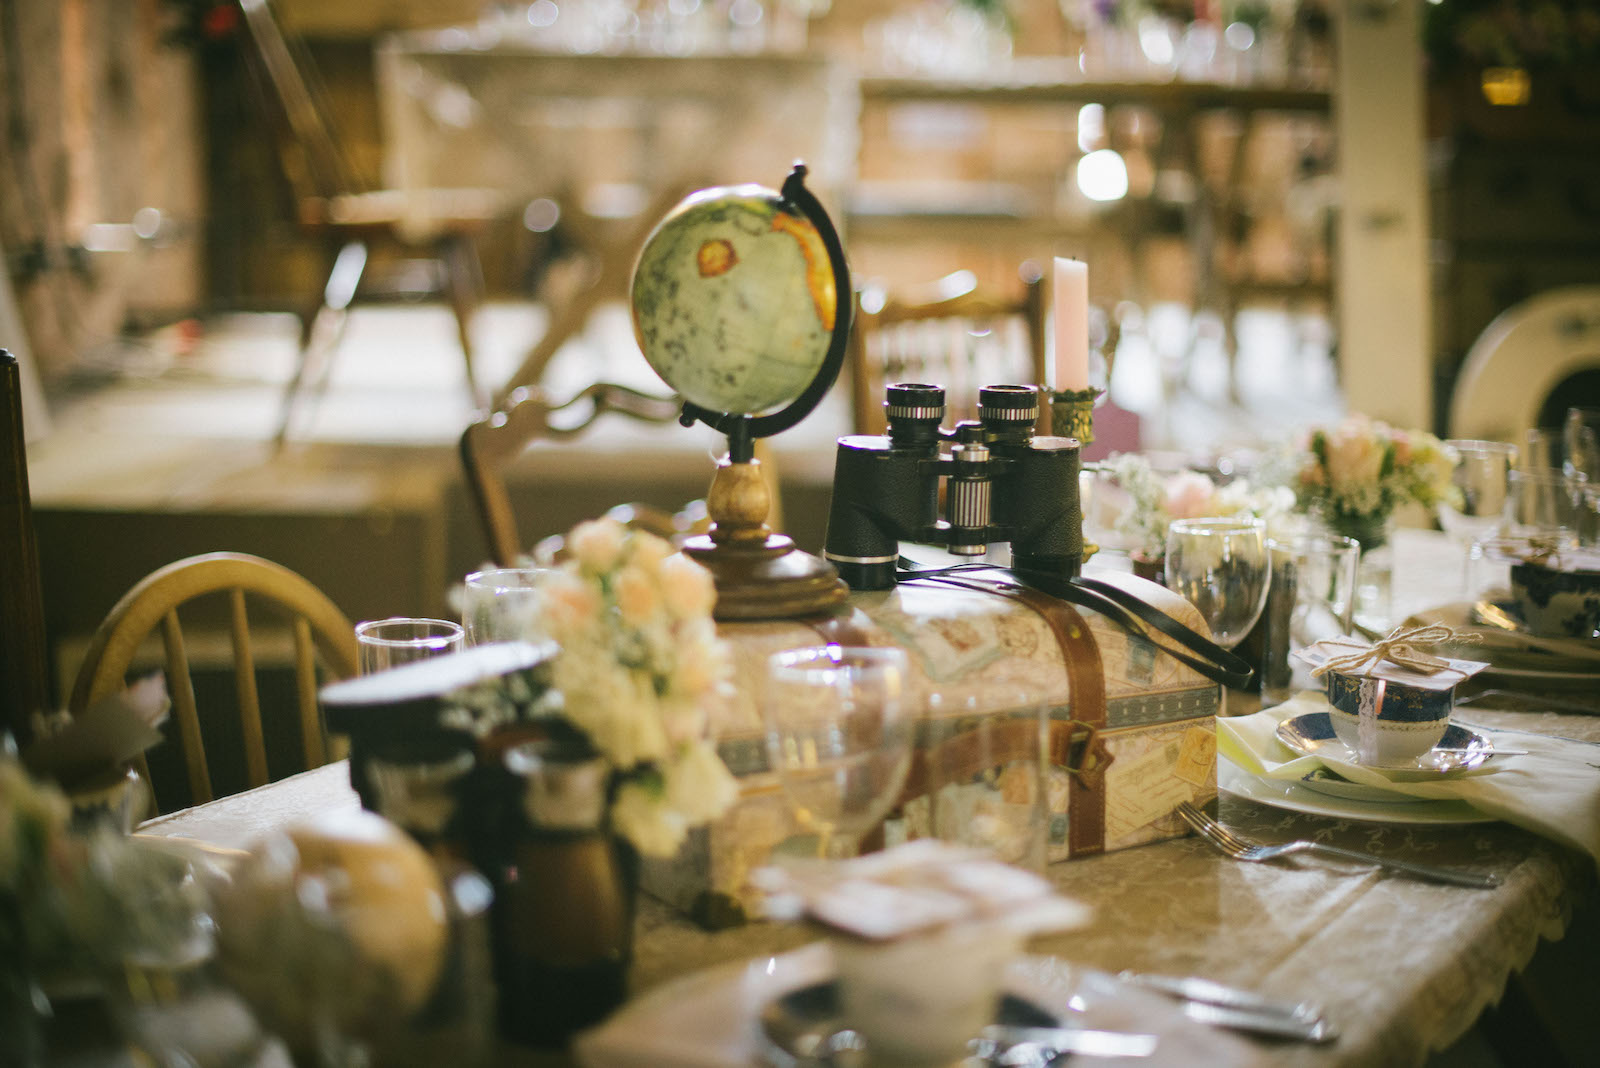 Vintage wedding decor at Hereford vintage wedding venue